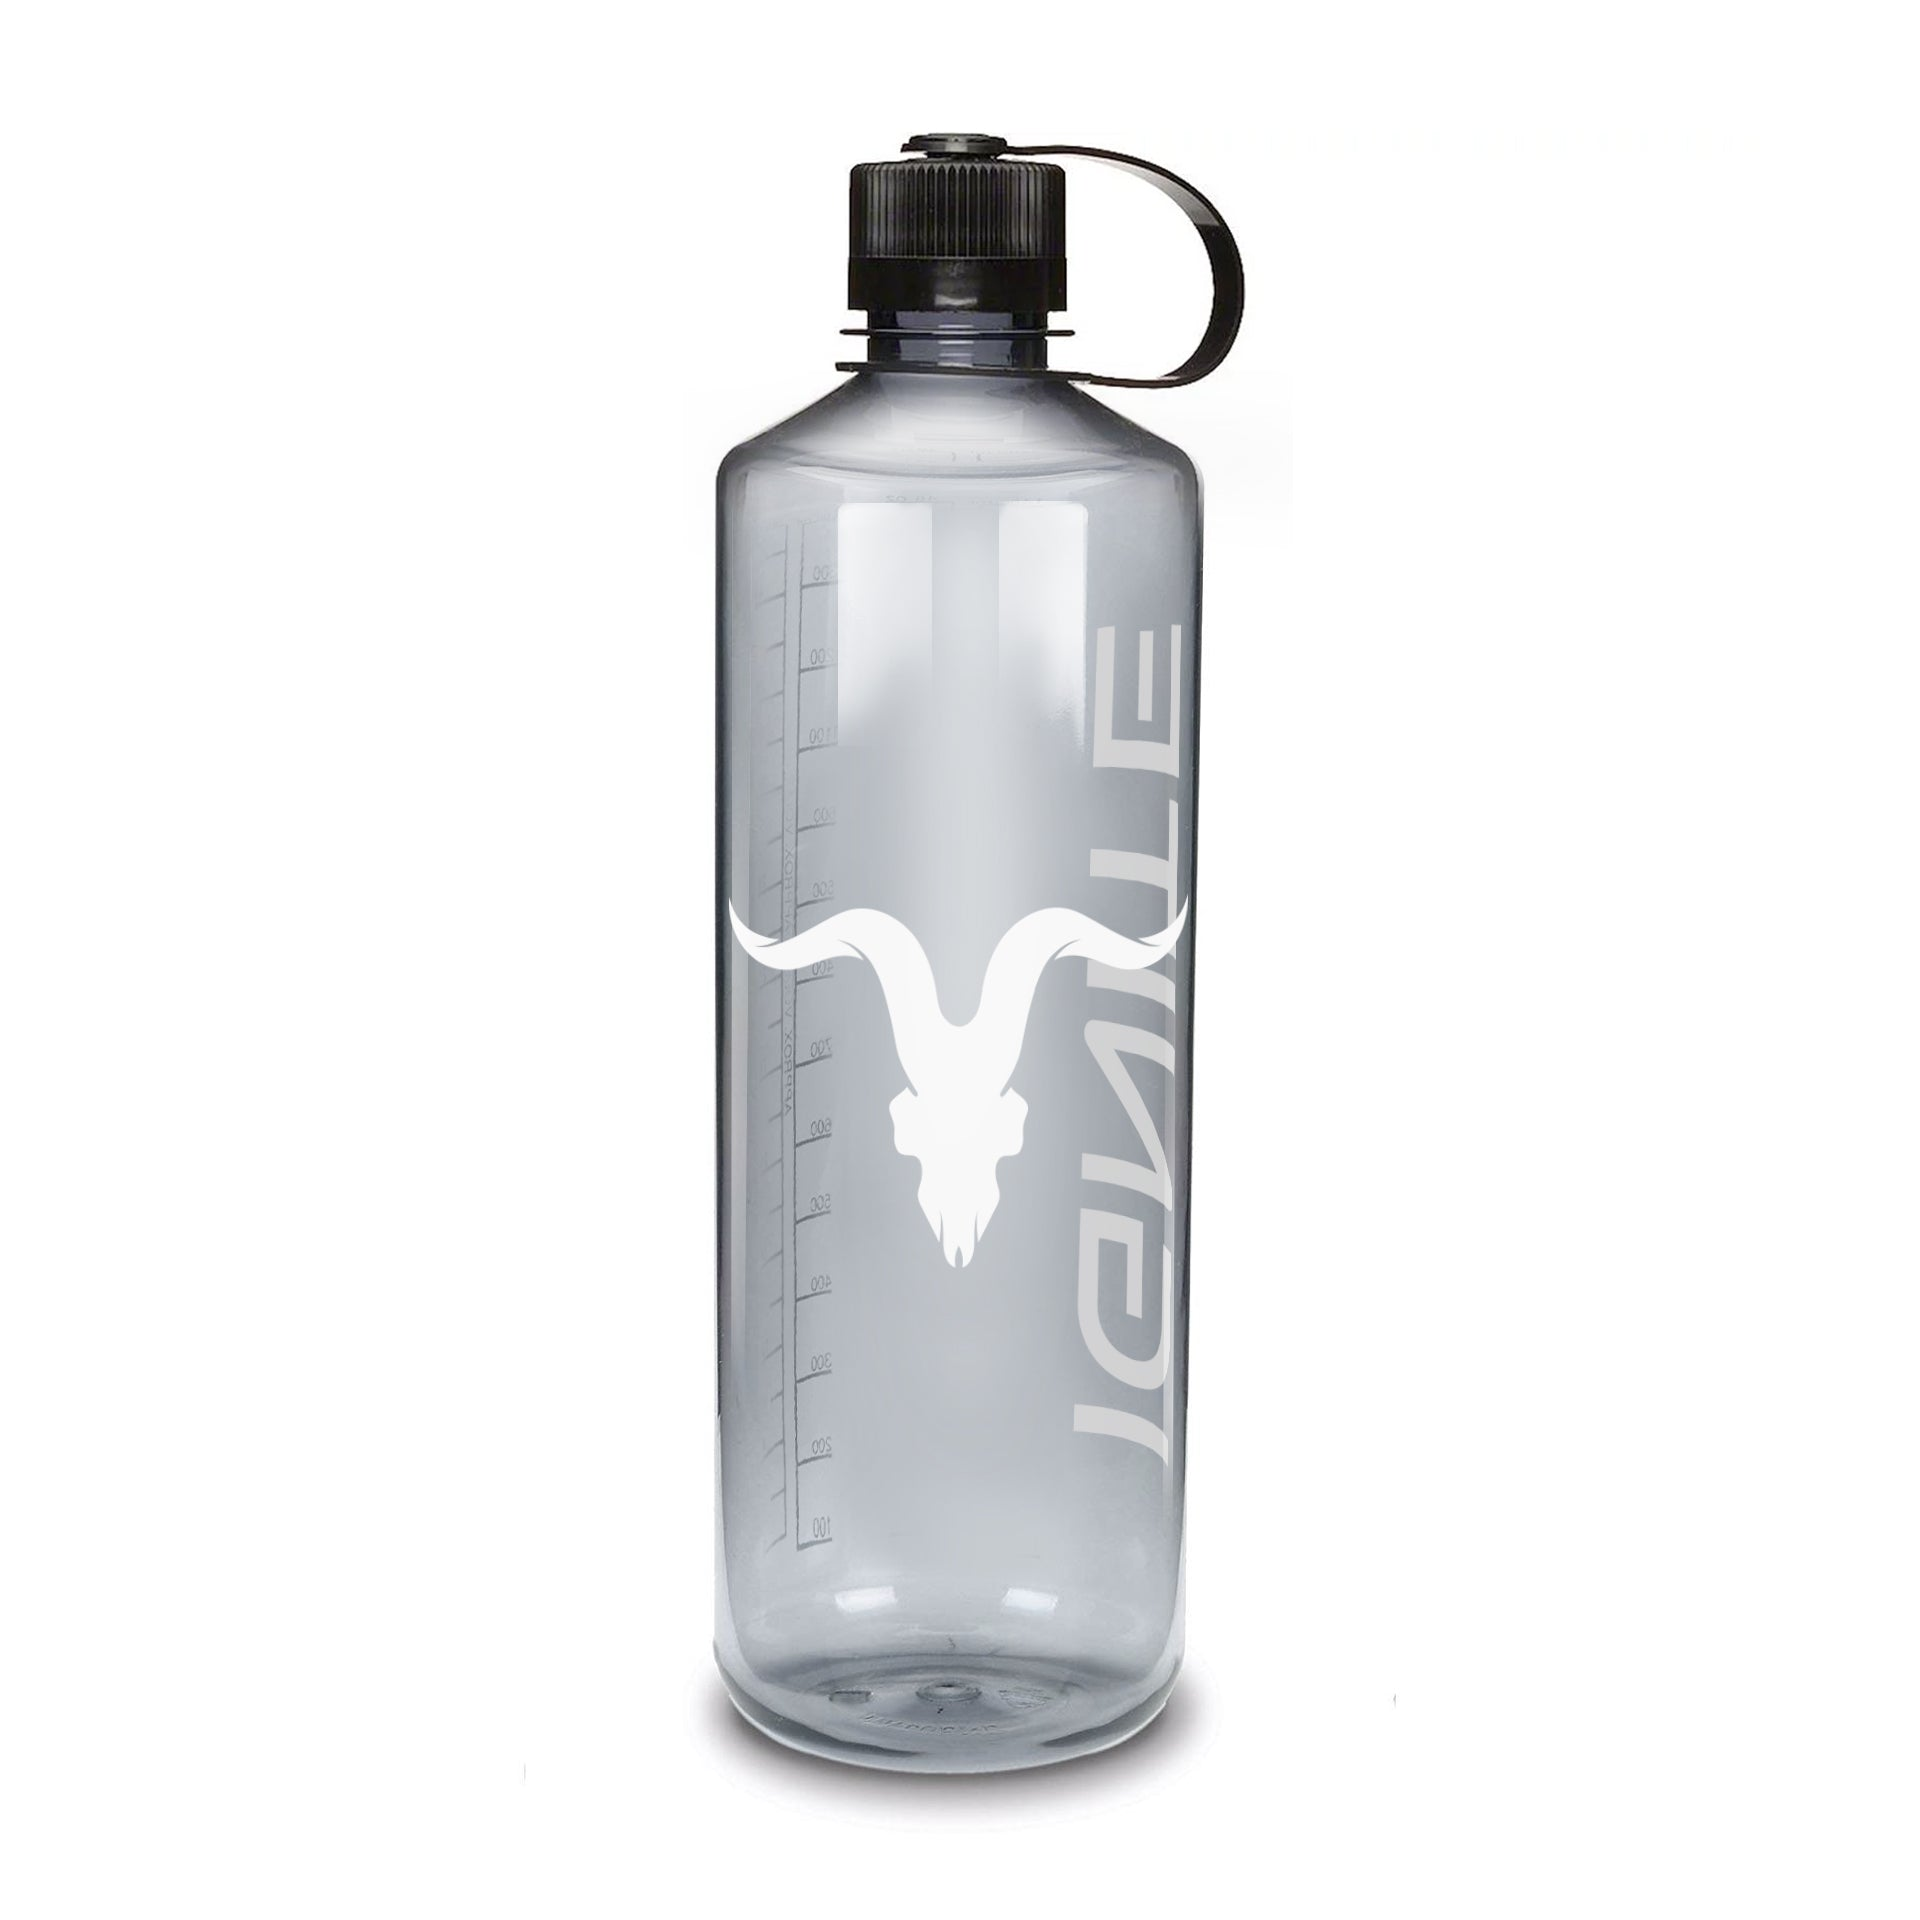 IGNITE PREMIUM 32 oz. Water Bottle with White Logo - ignite-merch